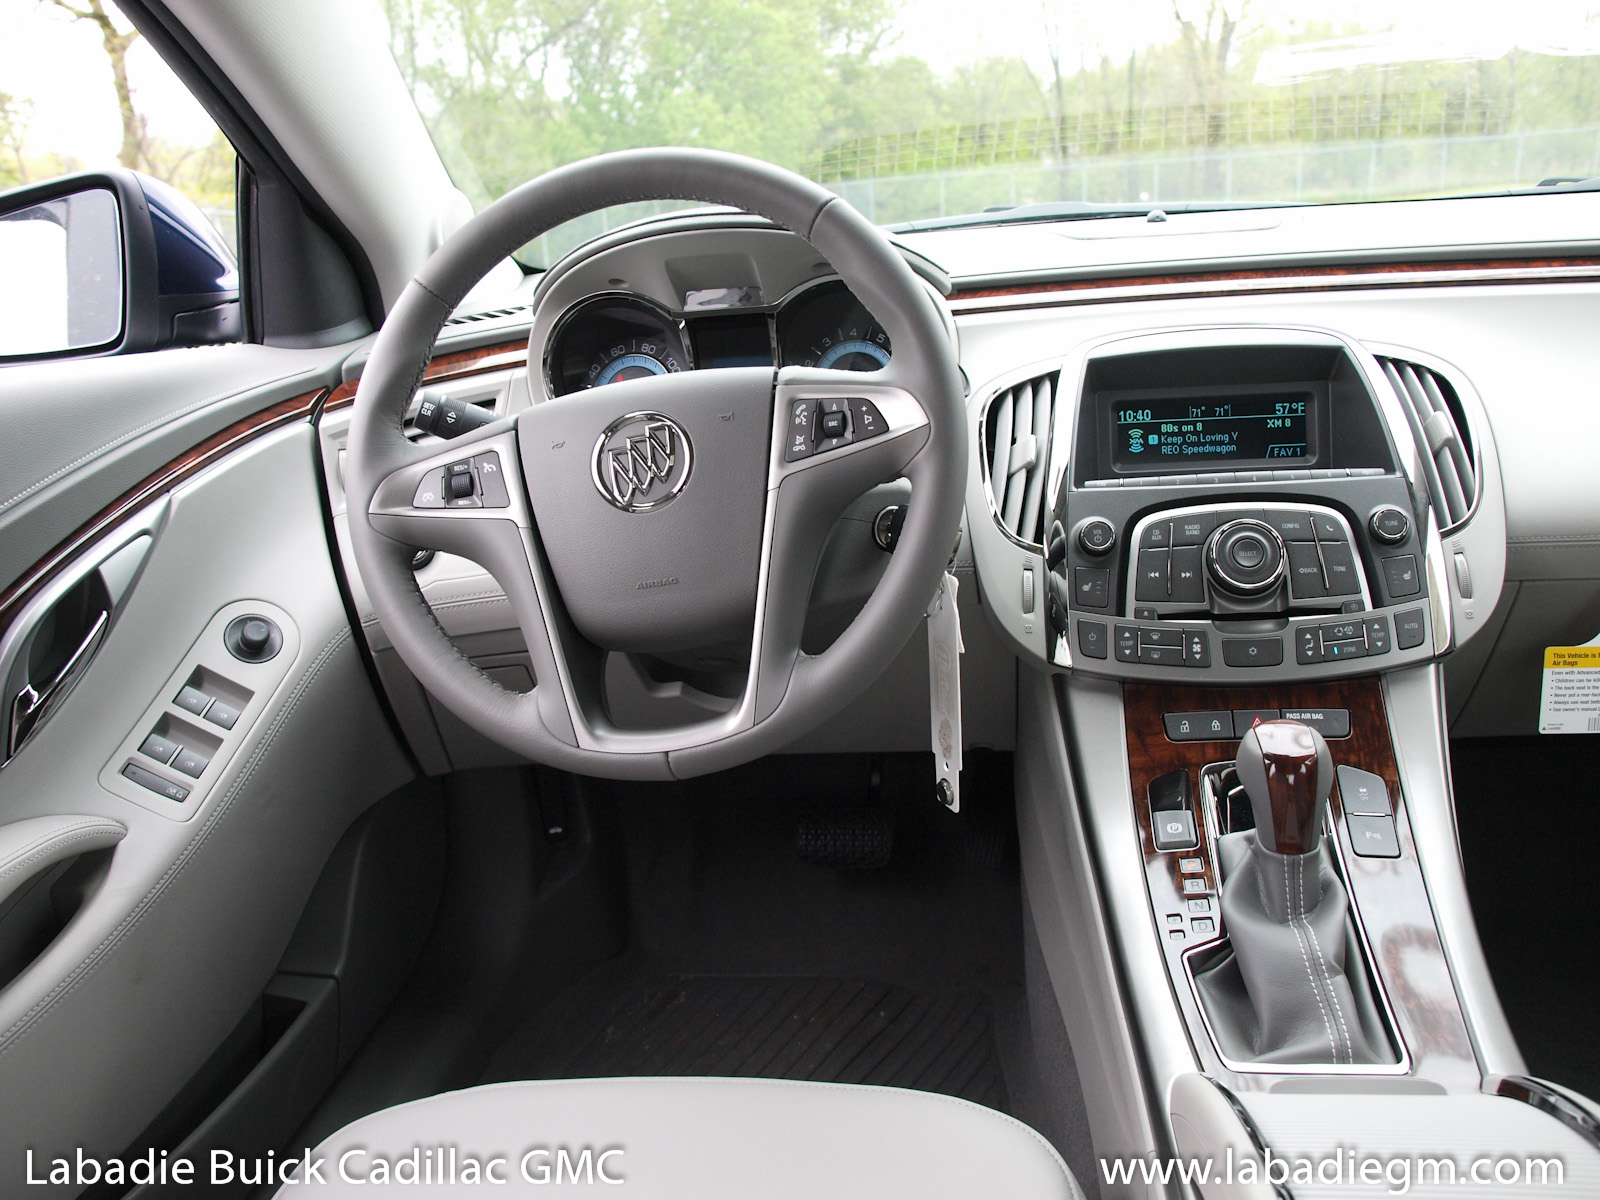 Front Interior 2011 Buick Lacrosse Labadie Buick Bay City Michigan Area Flickr Photo Sharing